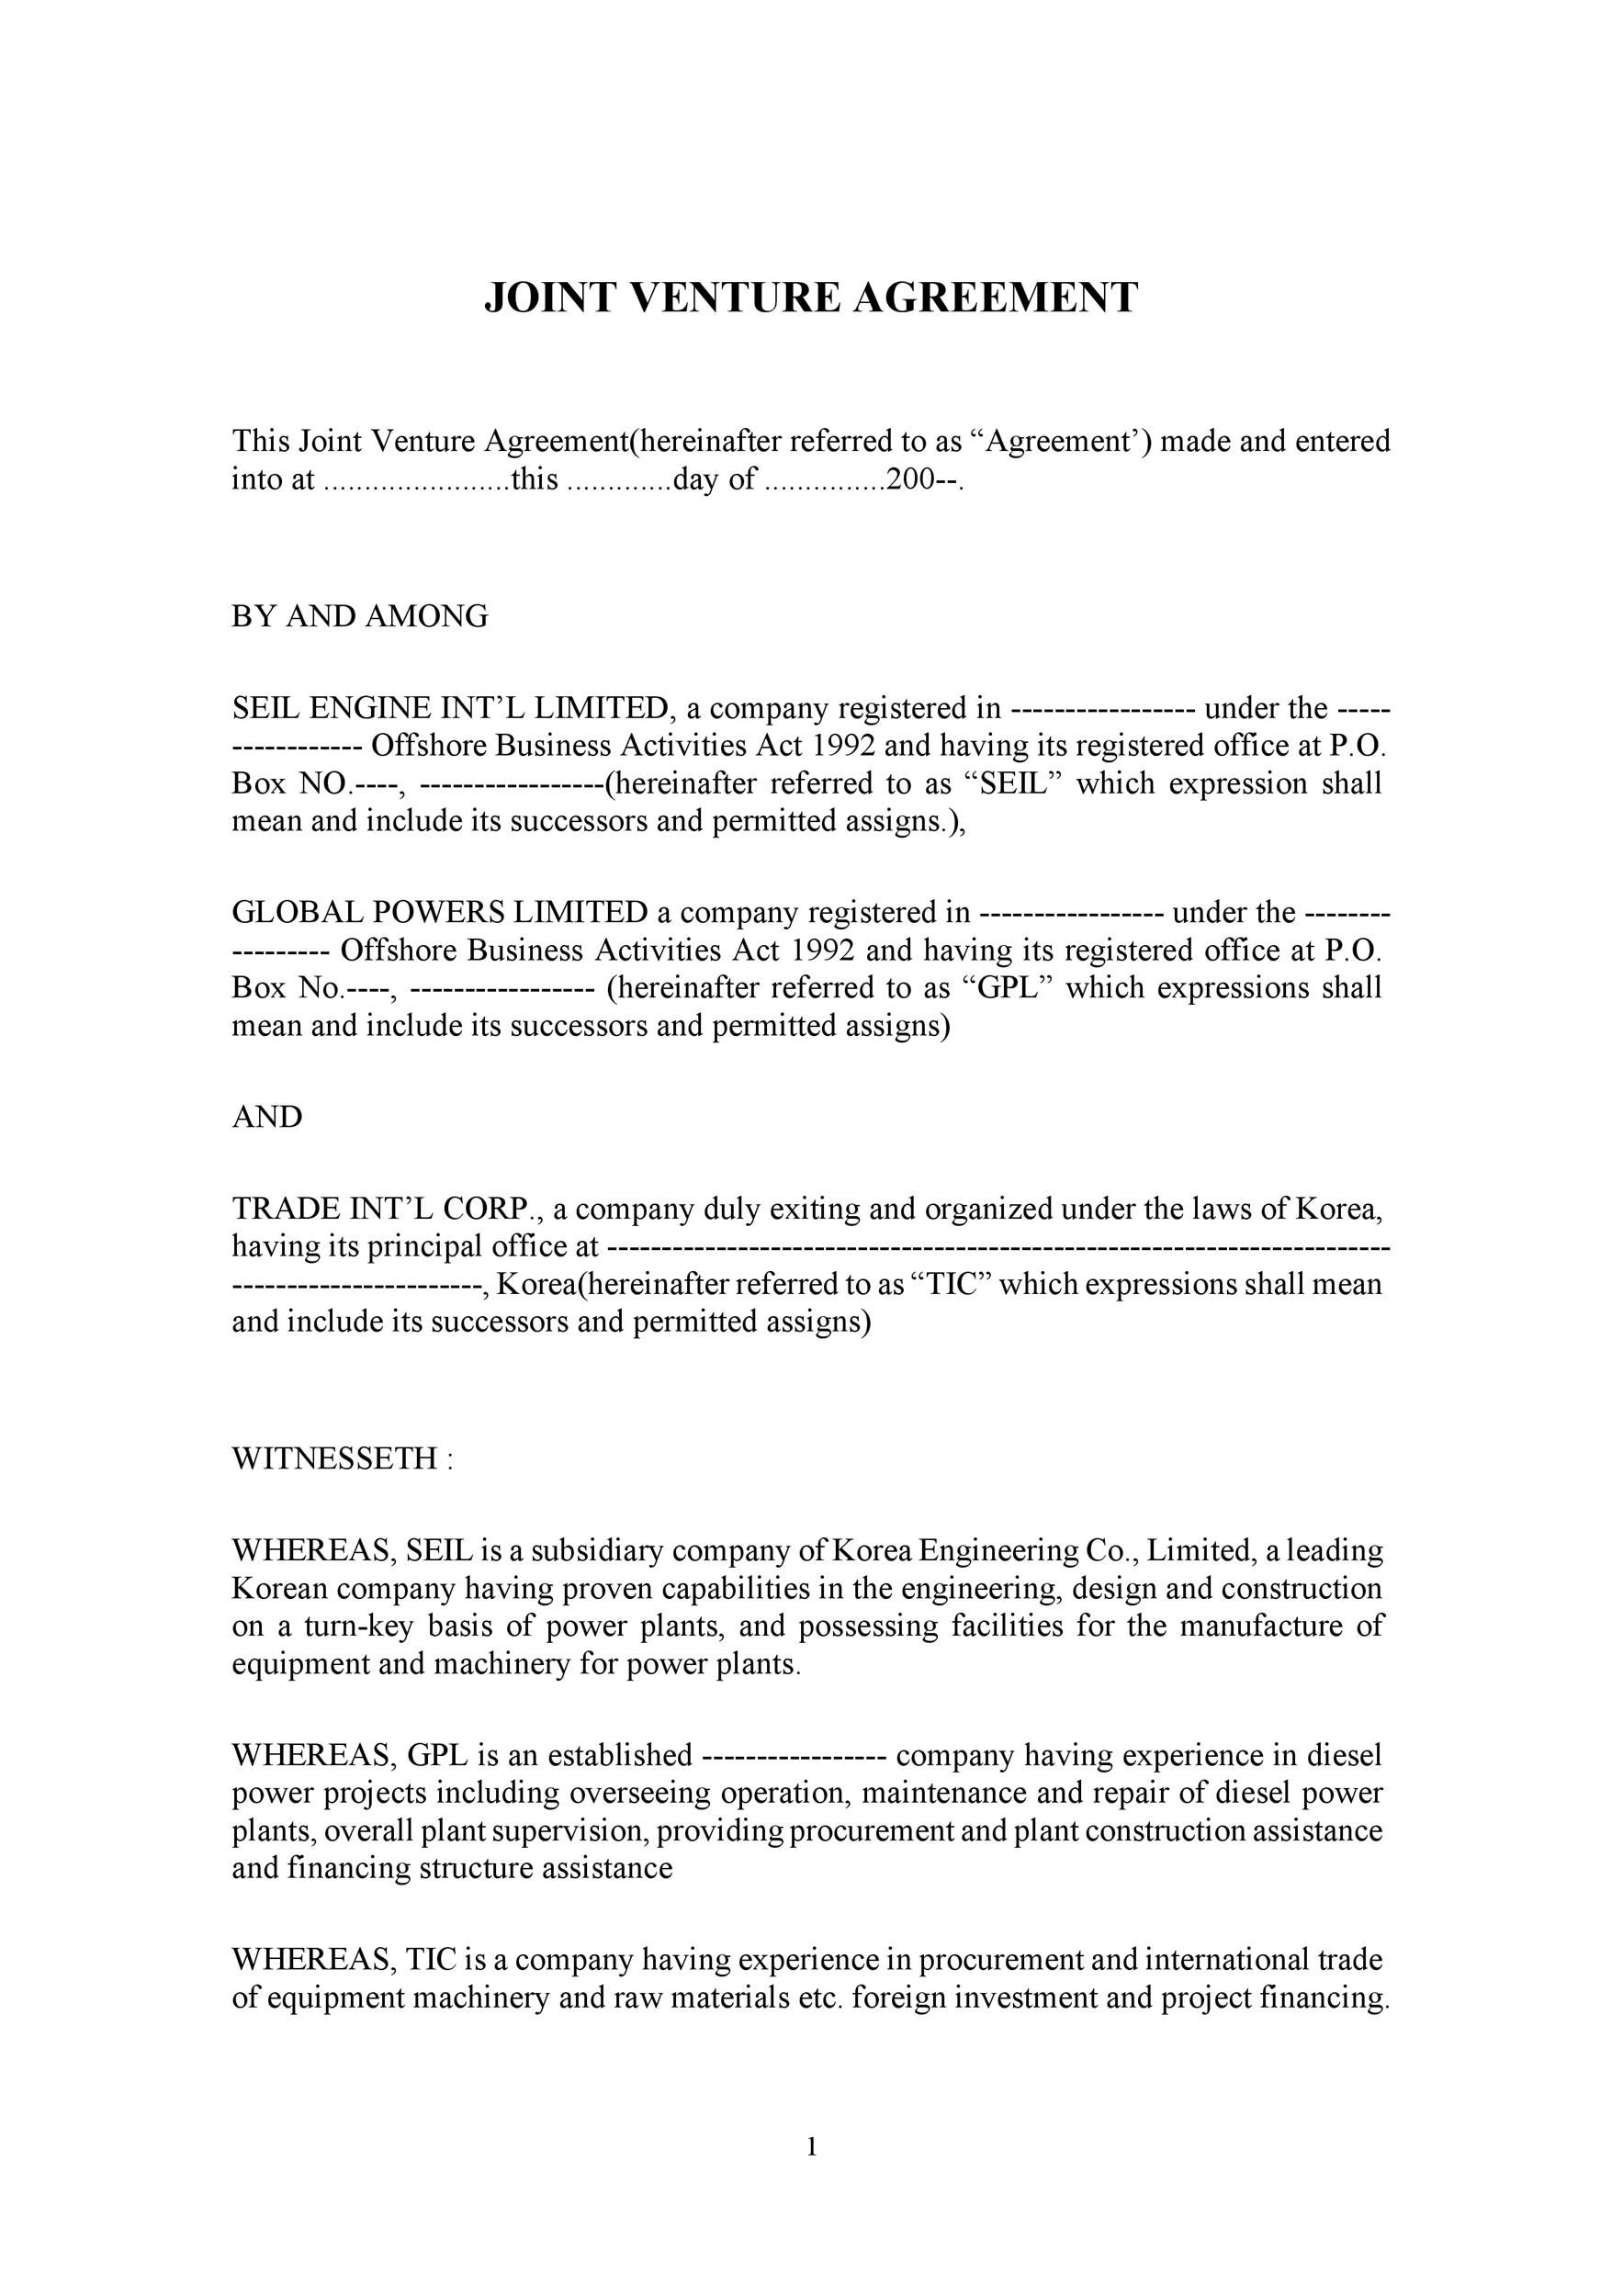 005 Remarkable Joint Venture Agreement Template High Definition  South African Doc Uk Property DevelopmentFull